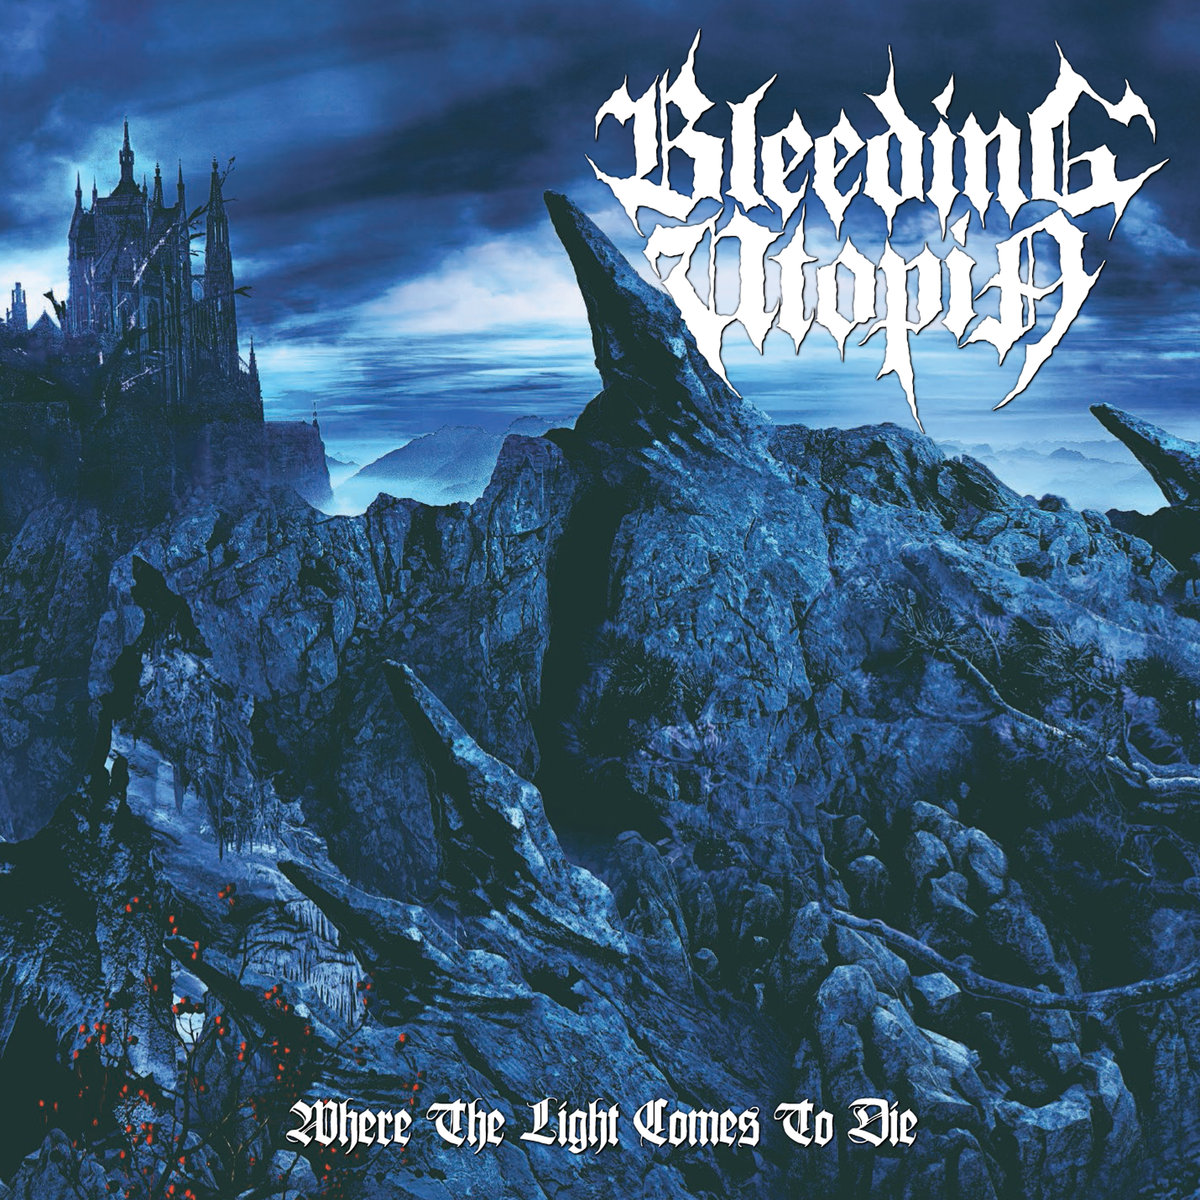 bleeding utopia – where the light comes to die